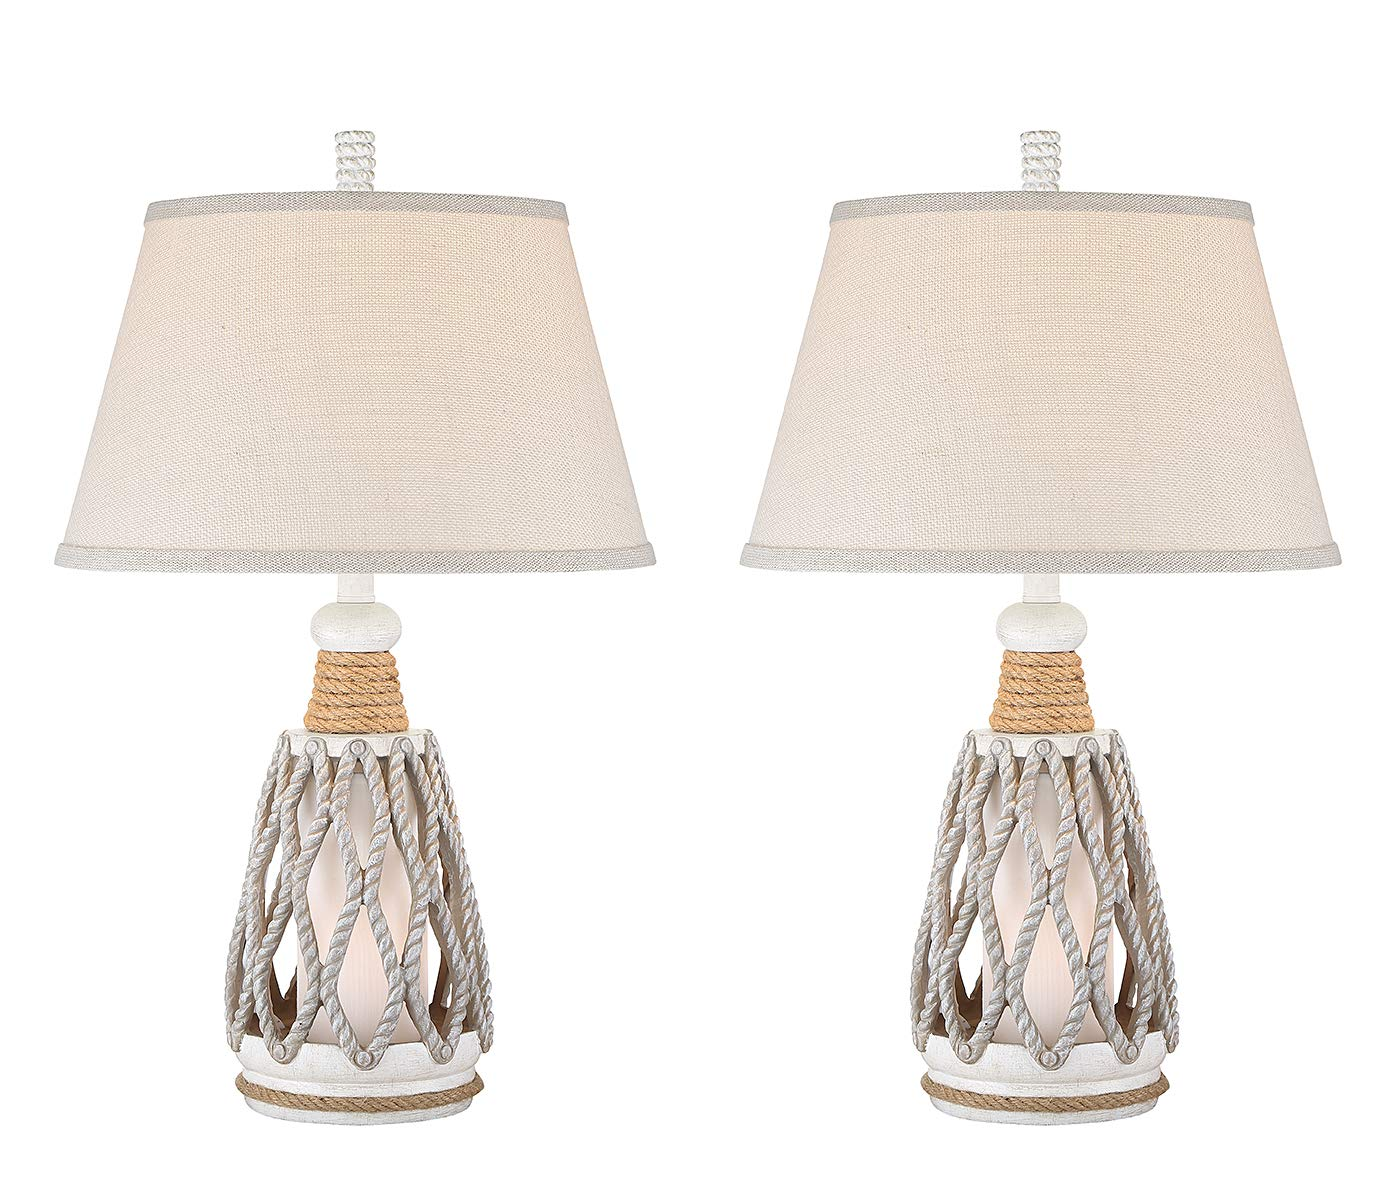 Seahaven Rope Coastal Table Lamp - Antique White - Lamp Set - Rope Lantern Style